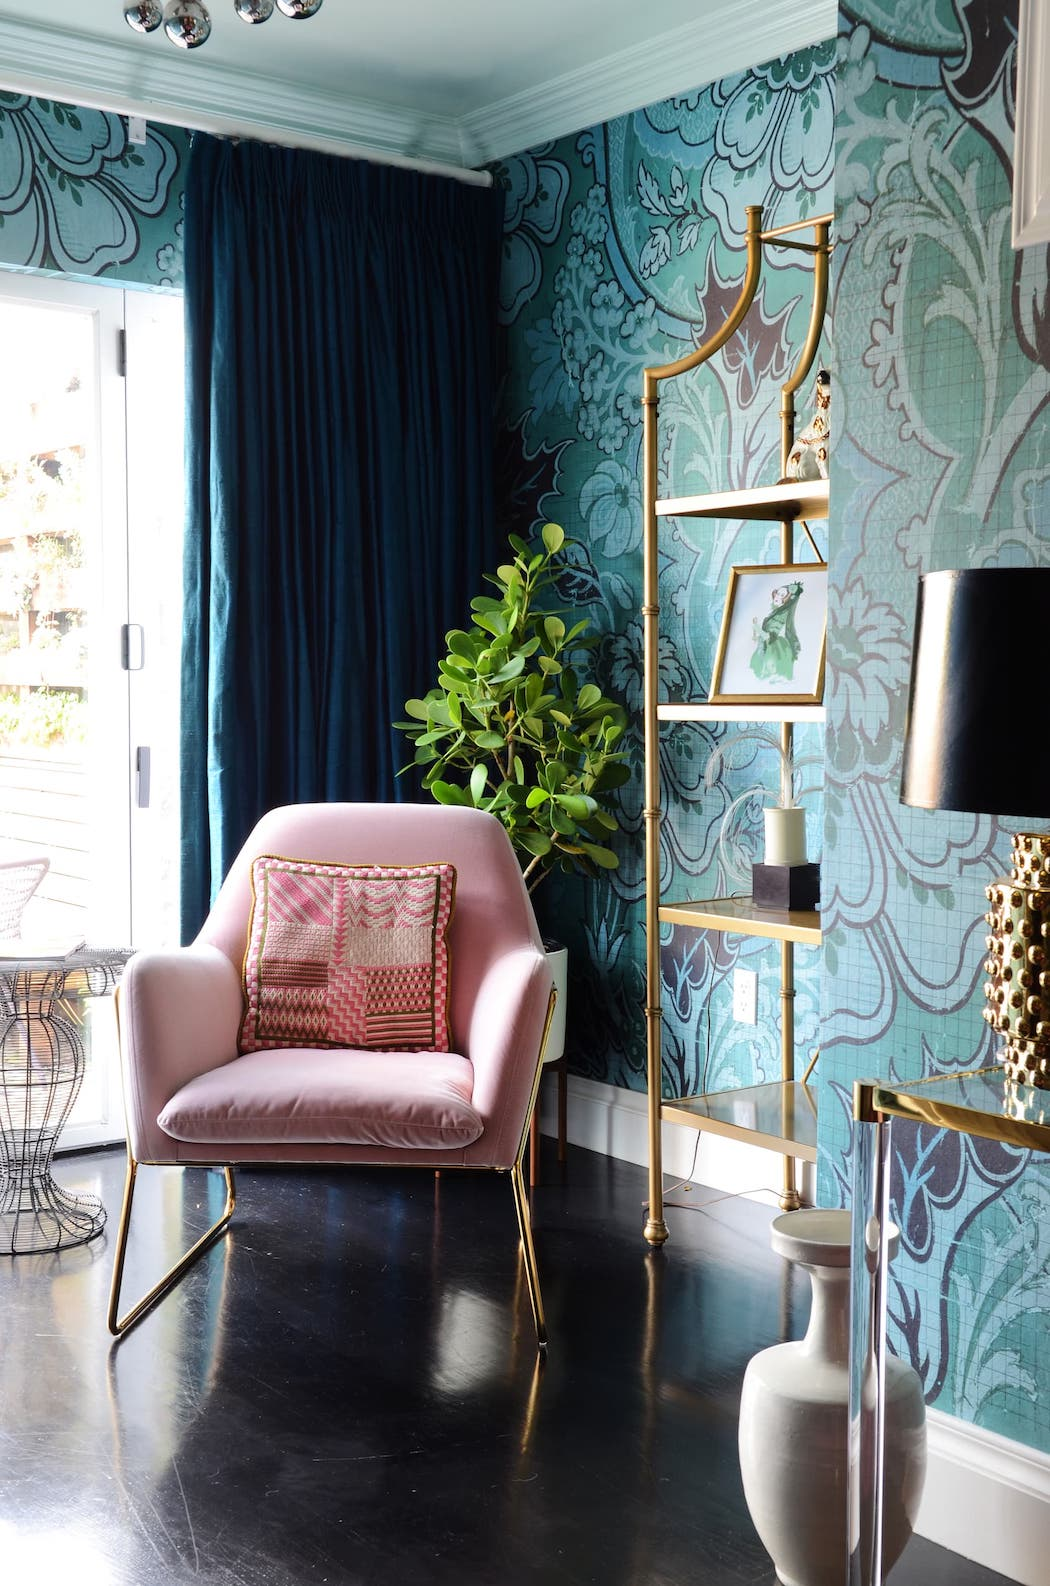 sitting area with blue wallpaper and gold accents and pink chair.jpeg